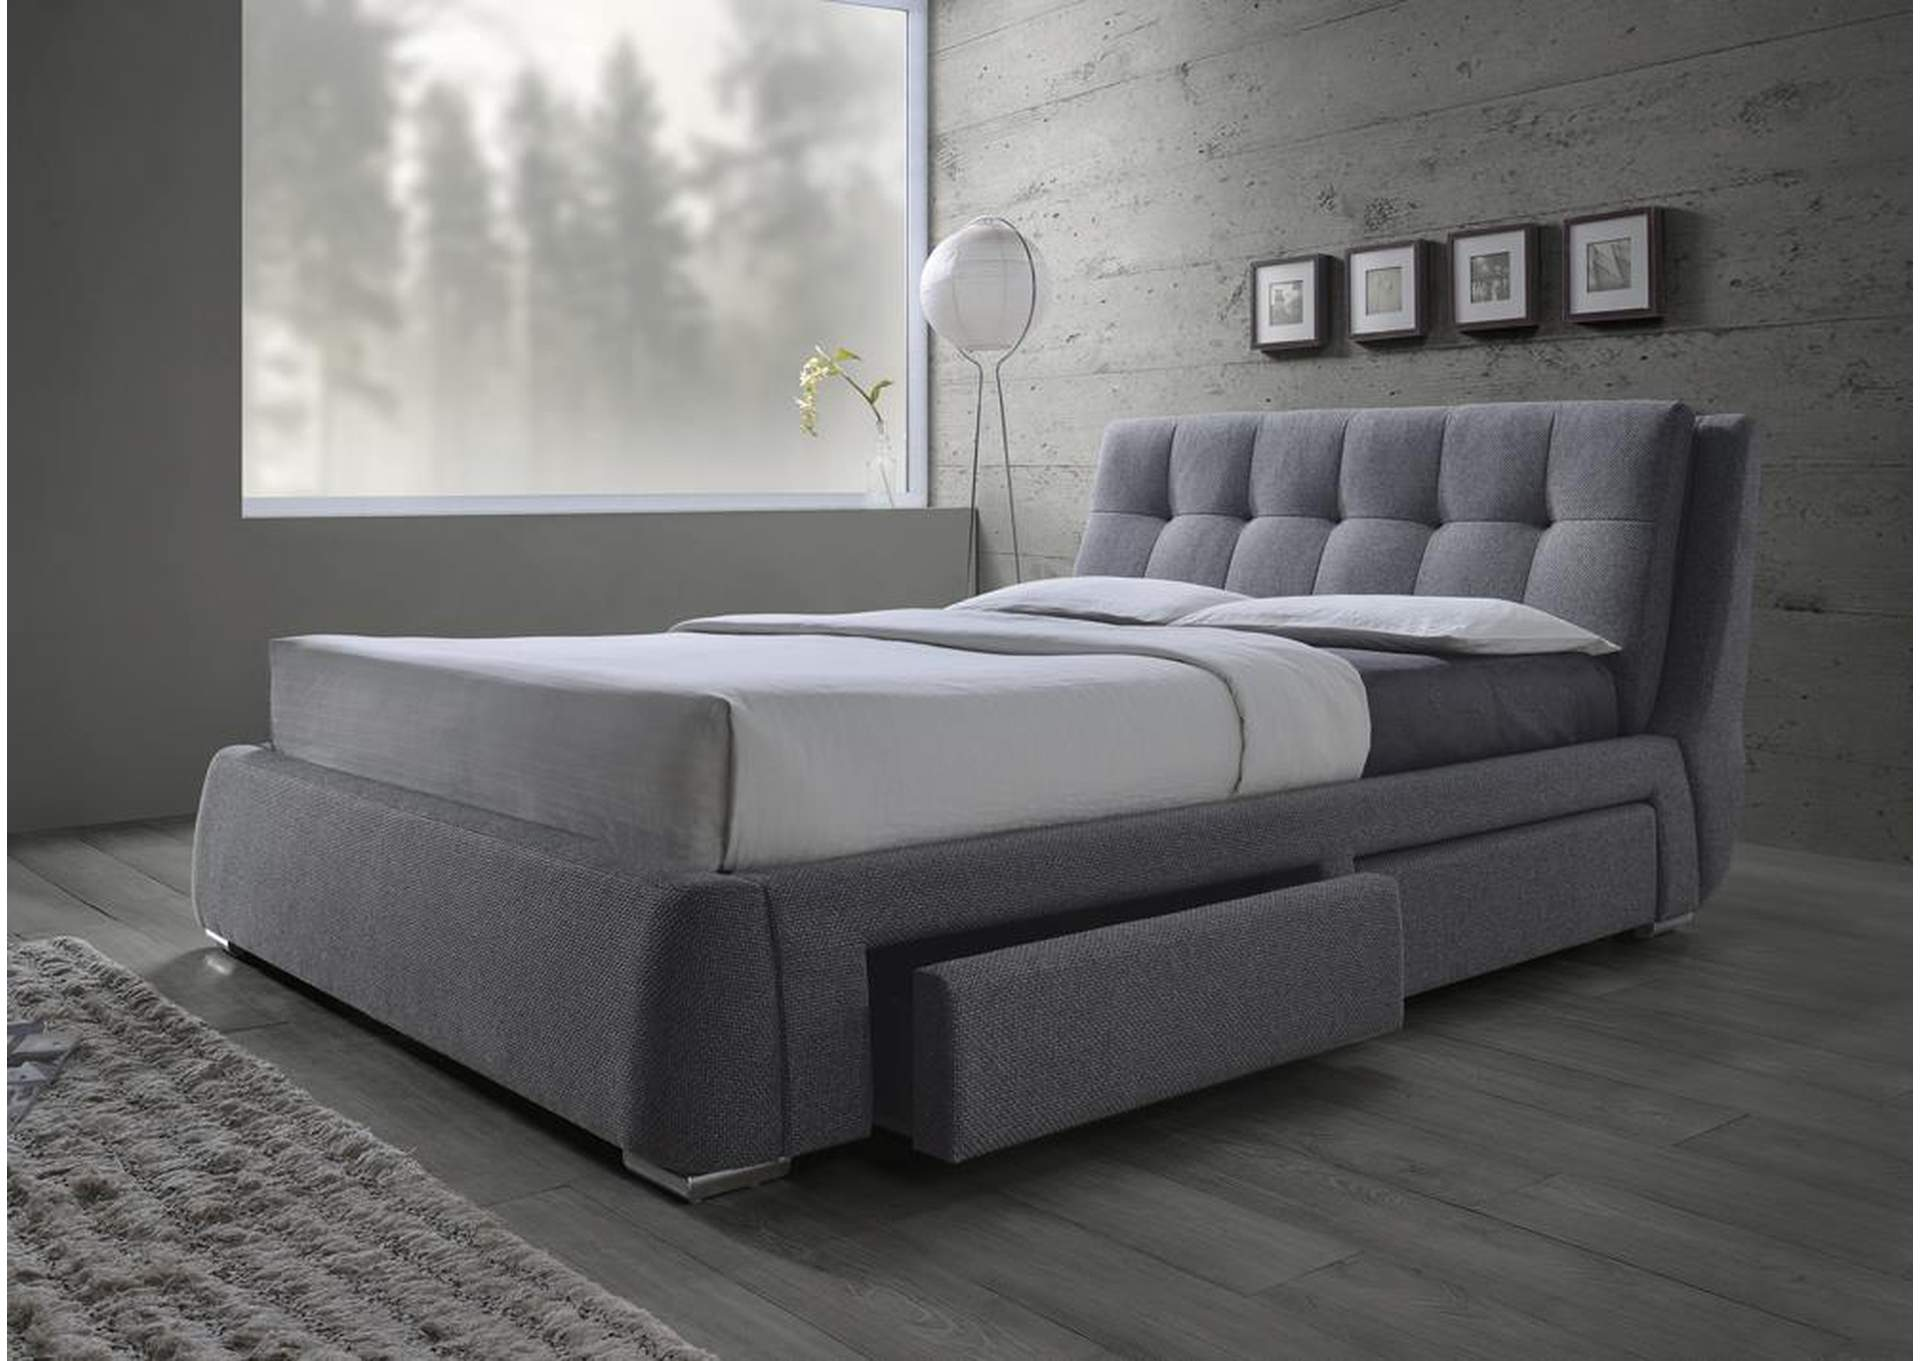 Queen Upholstered Storage Bed,Coaster Furniture